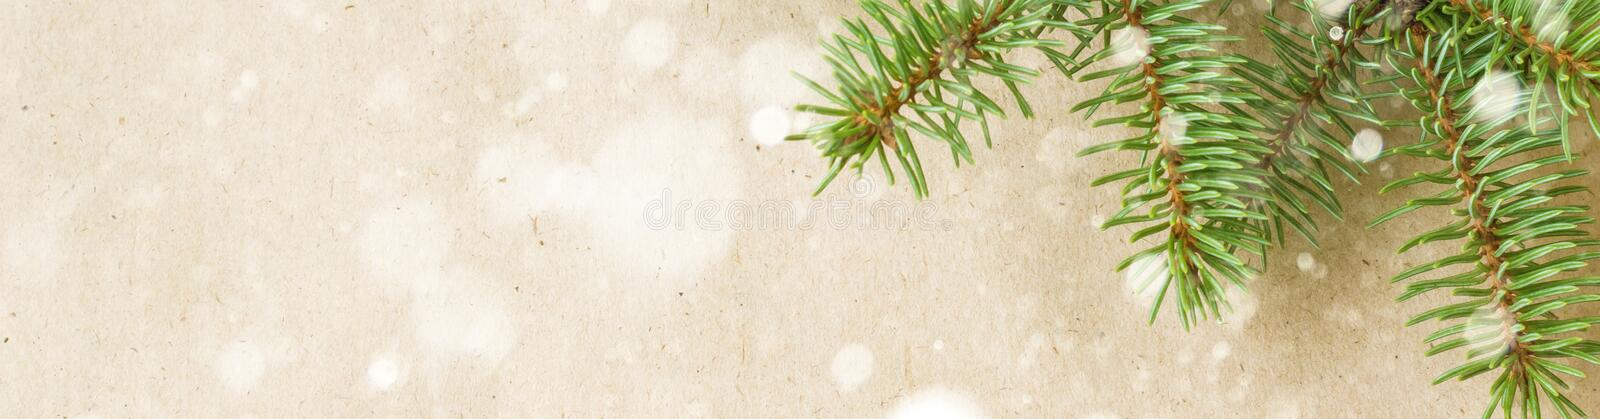 banner of Festive christmas corner with fir branches and snowflakes with snow on rustic beige background stock images